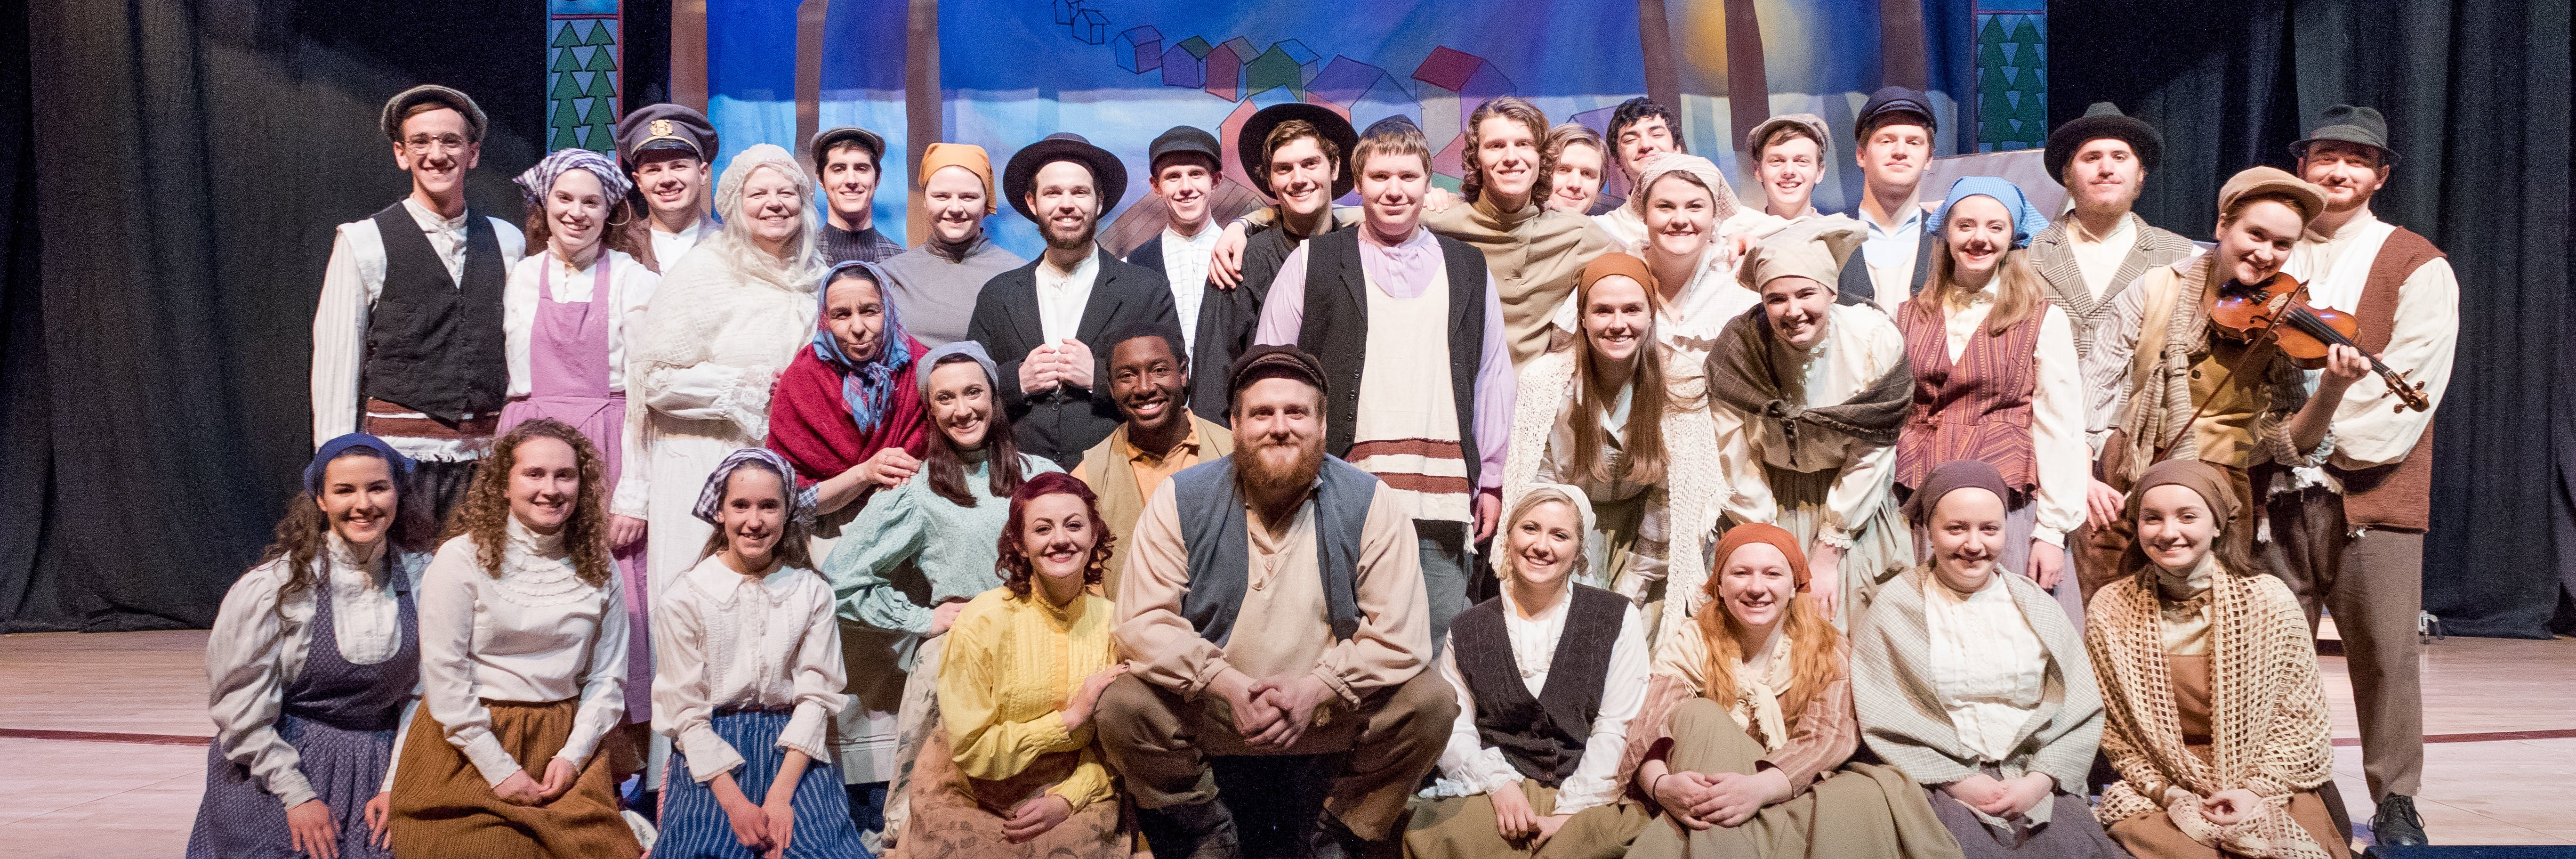 The Fiddler on the Roof cast